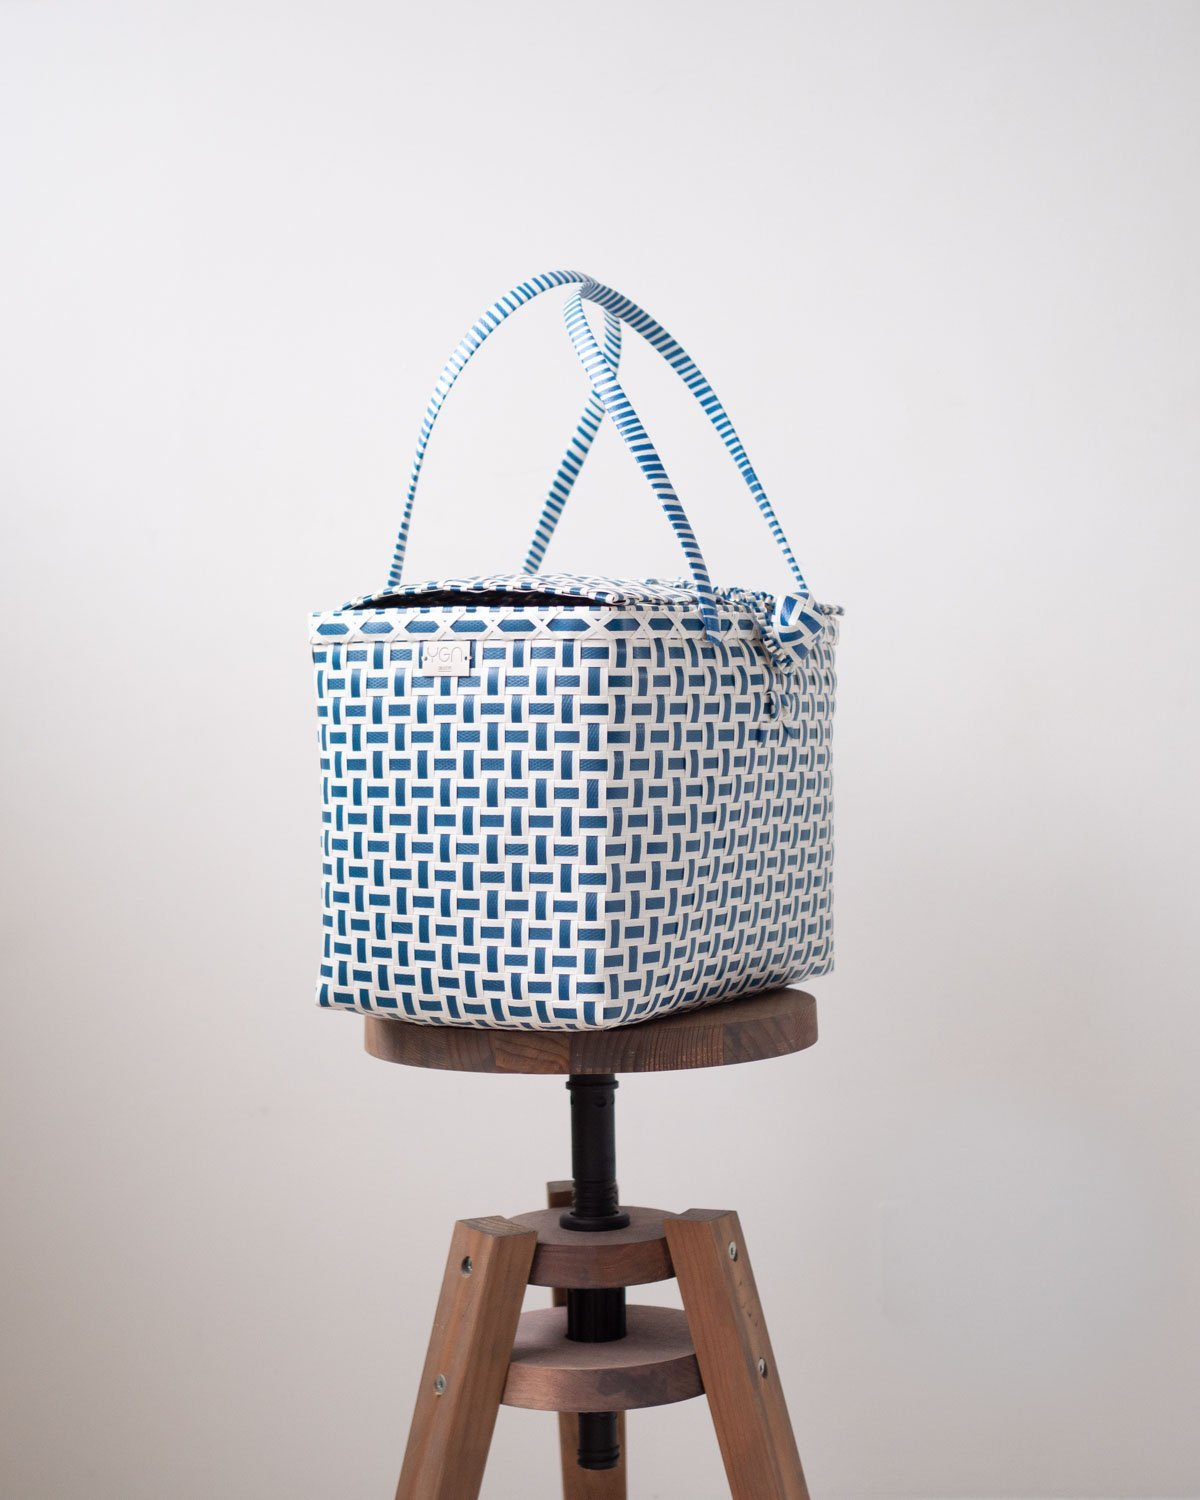 Lidded Picnic Basket with Handles | Blue & White | Ethically Made in Myanmar - YGN Collective